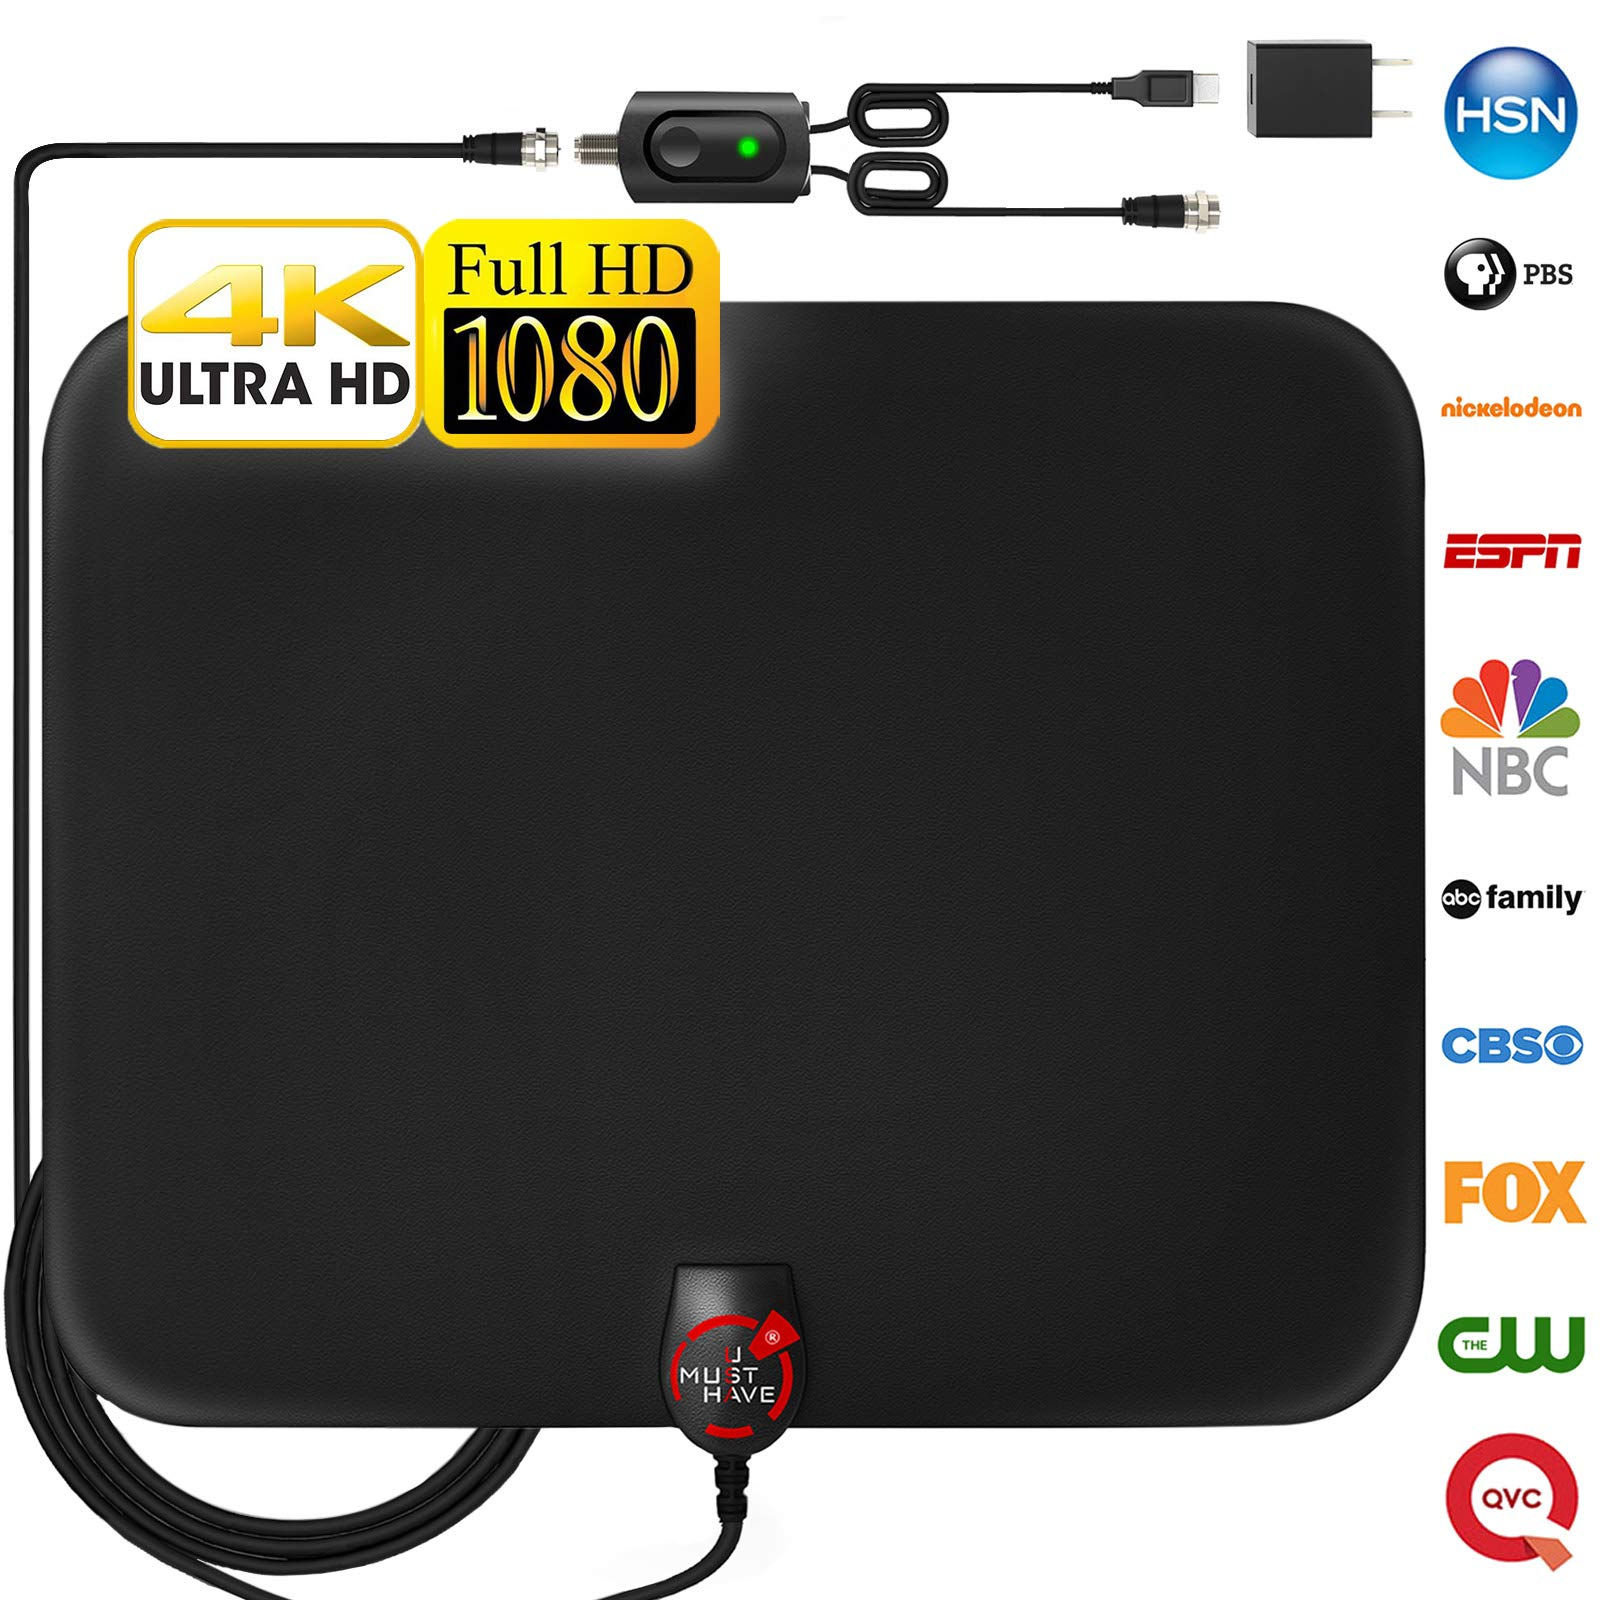 [Newest 2019] Amplified HD Digital TV Antenna Long 130+ Miles Range – Support 4K 1080p and All Older TV's Indoor Powerful HDTV Amplifier Signal Booster - 18ft Coax Cable/USB Power Adapter